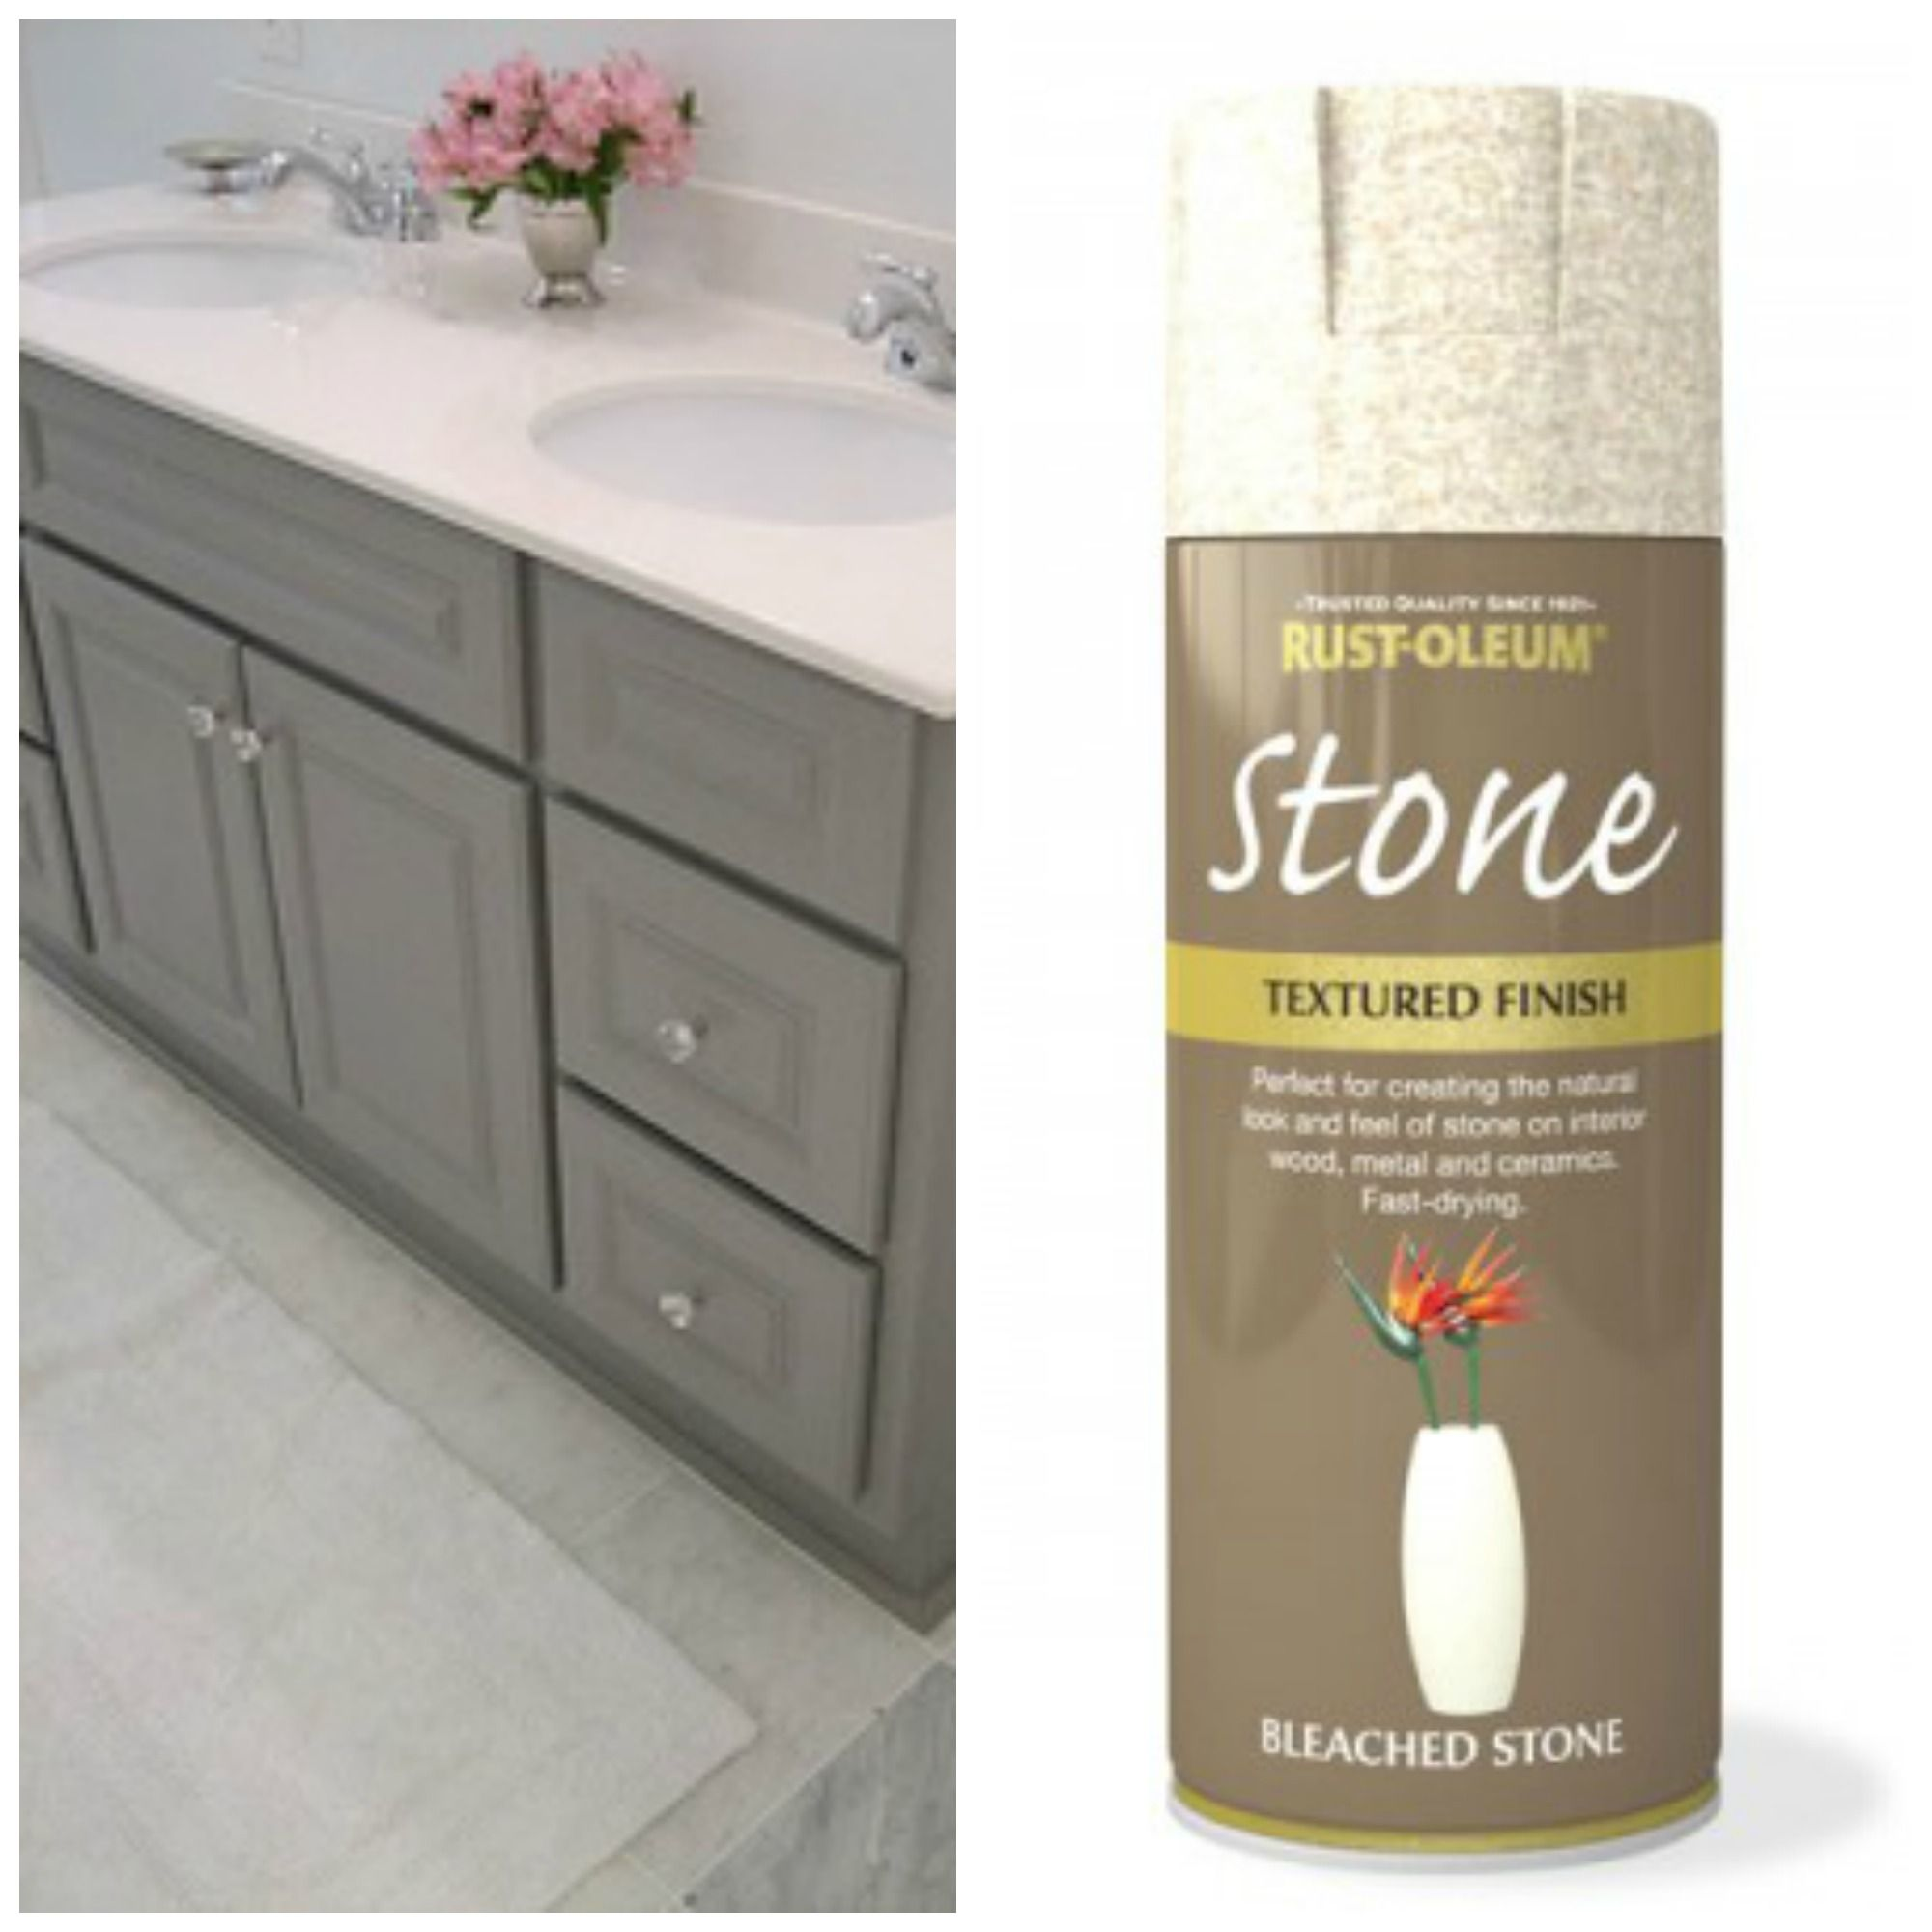 Grey Cabinet With Stone Colored Spray Paint For Counter Top Painting Kitchen Countertops Painting Bathroom Kitchen Design Diy